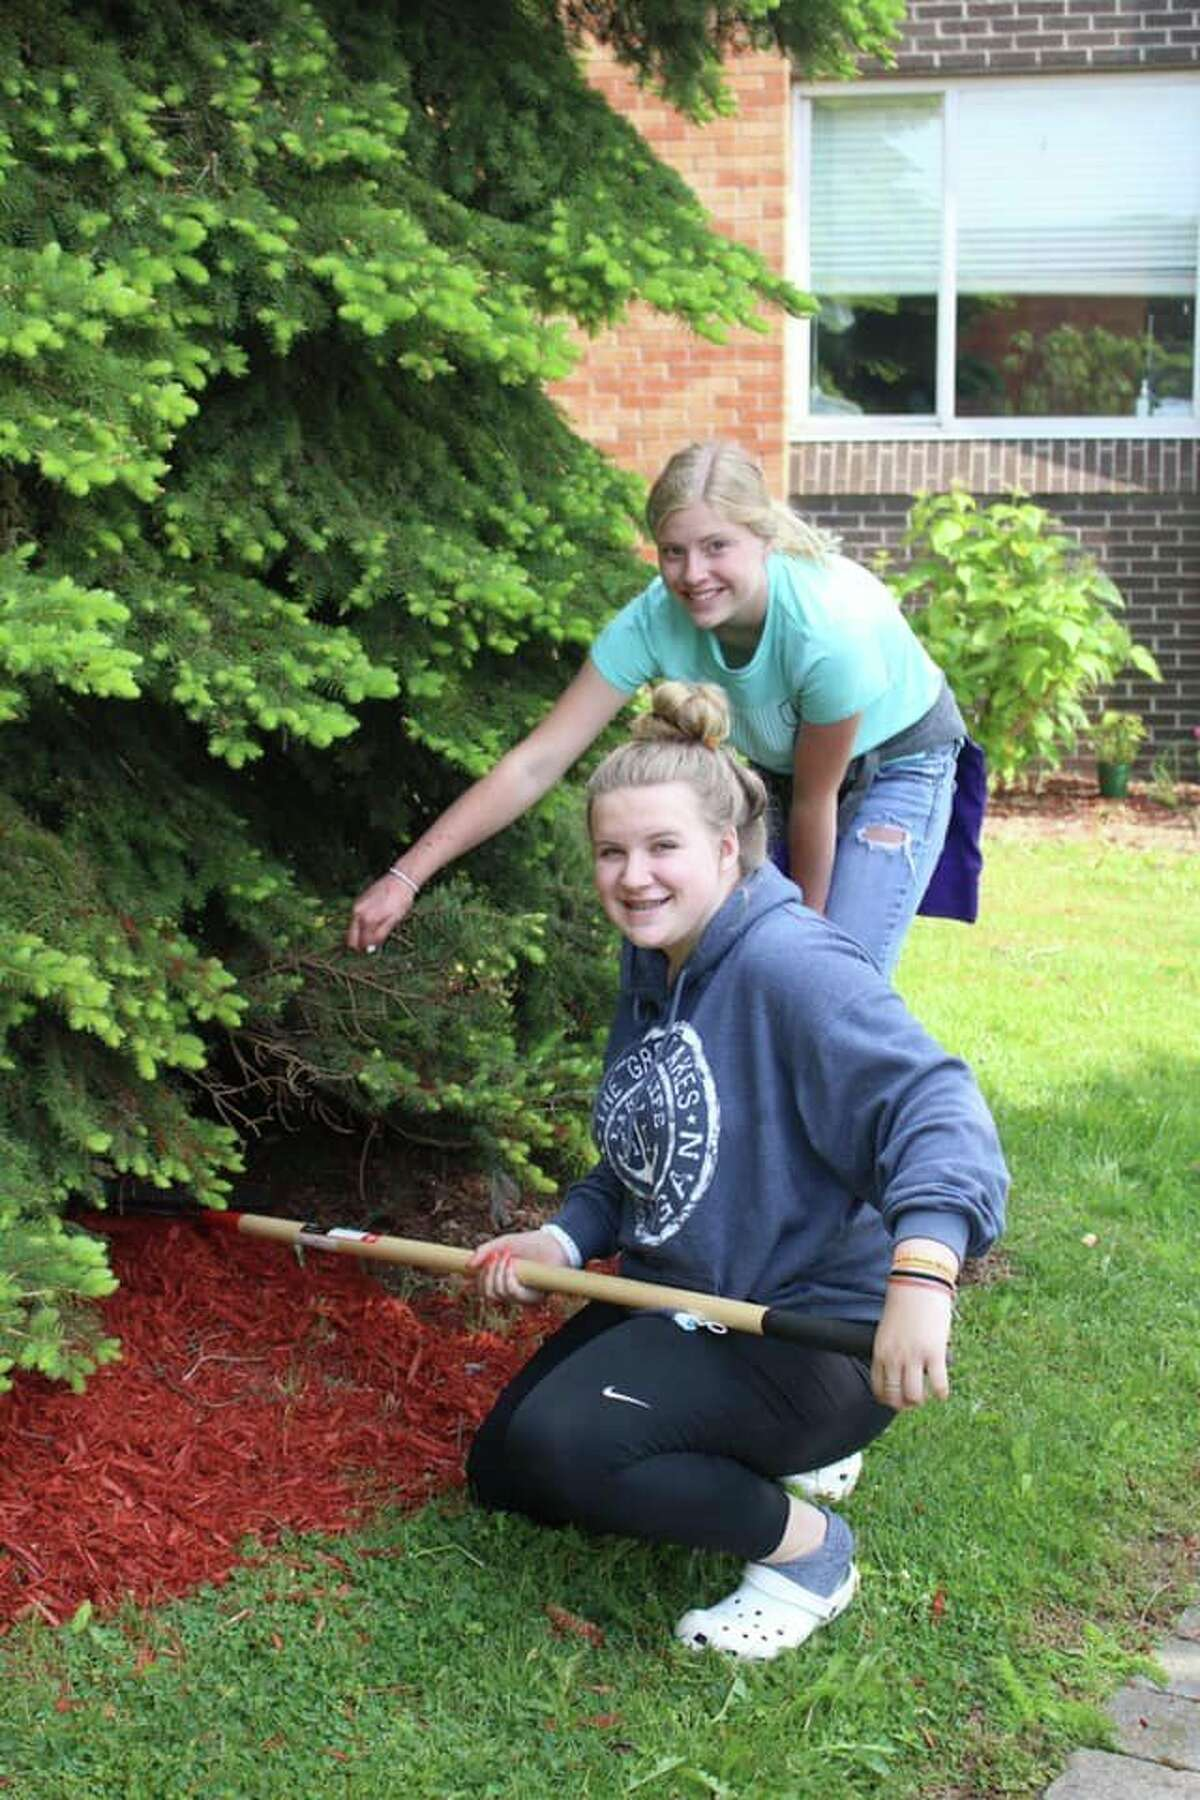 Harbor Beach FFA members help tend to gardens at the Harbor Beach Community Hospital. The organization's members help tend to the gardens and plant flowers there every year as one of many community service efforts. (Harbor Beach Community Schools/Courtesy Photo)